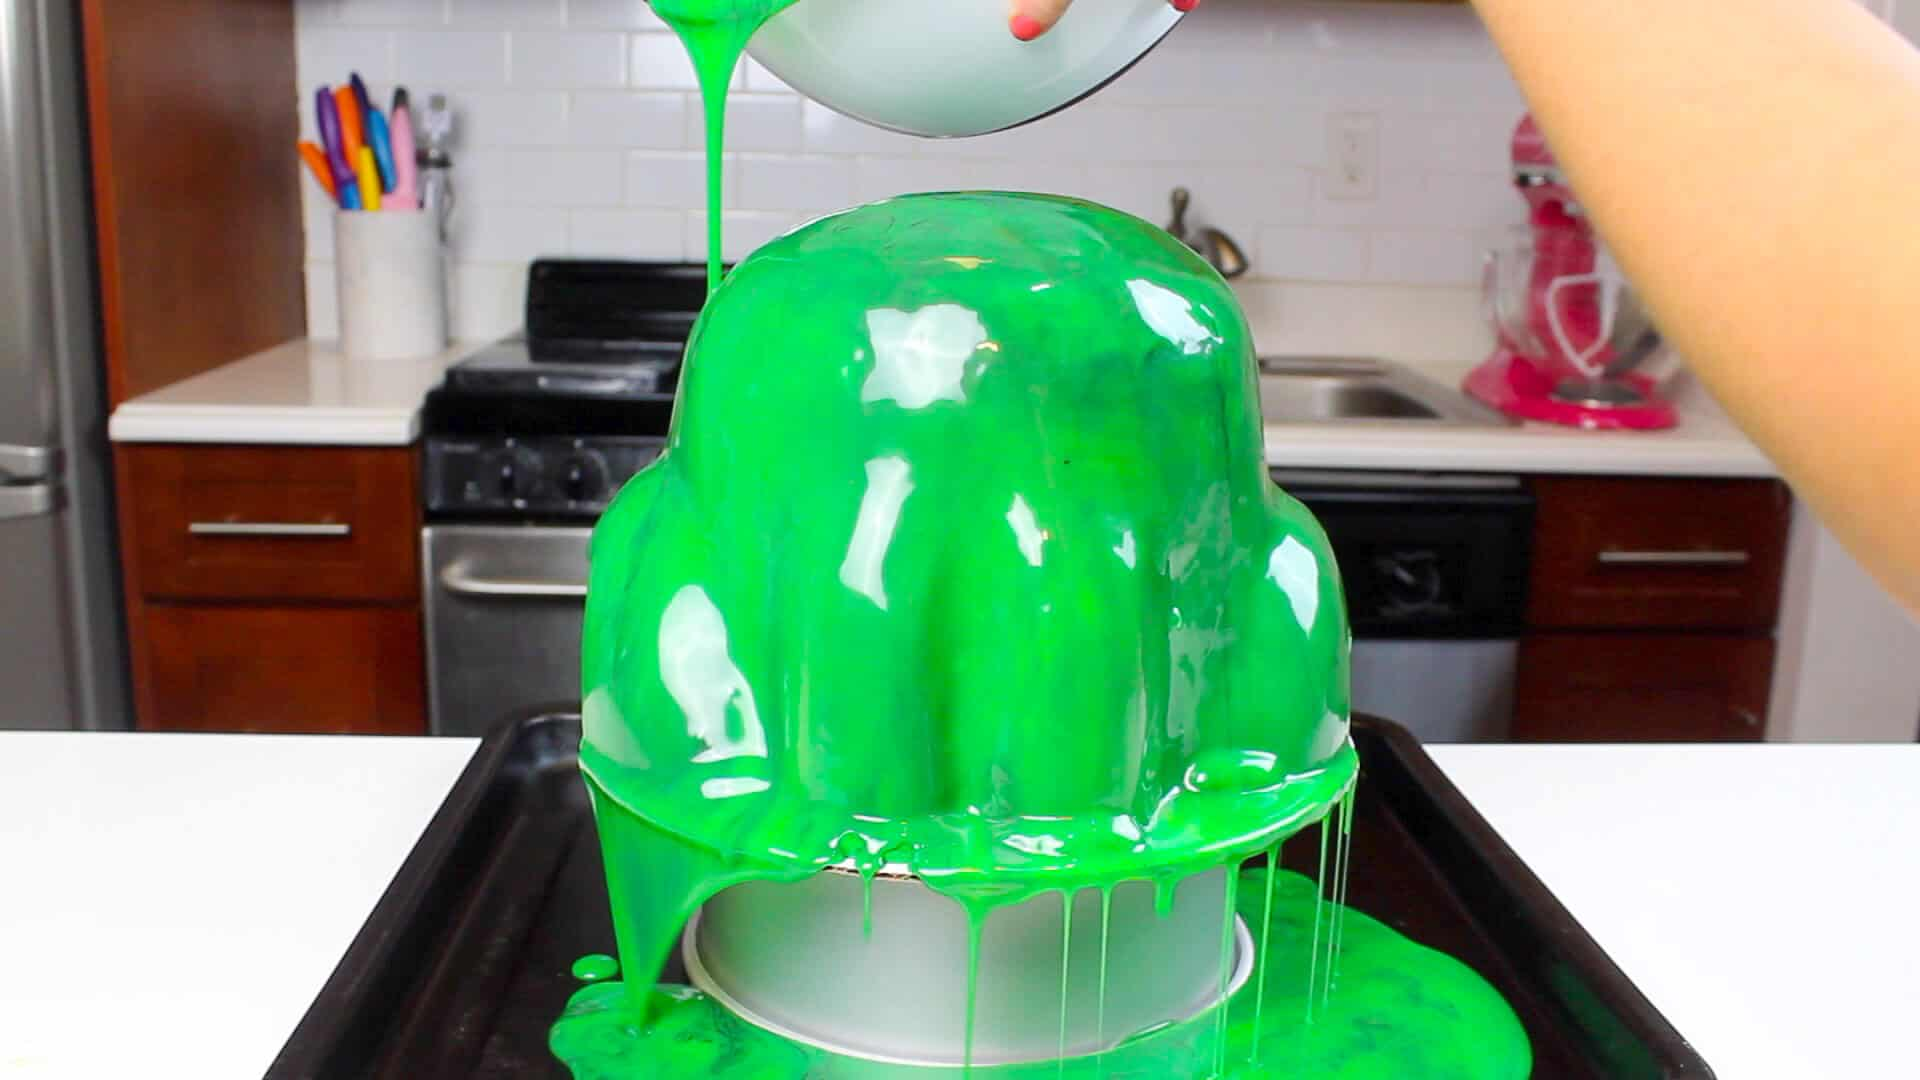 pouring glaze over frog cake #2